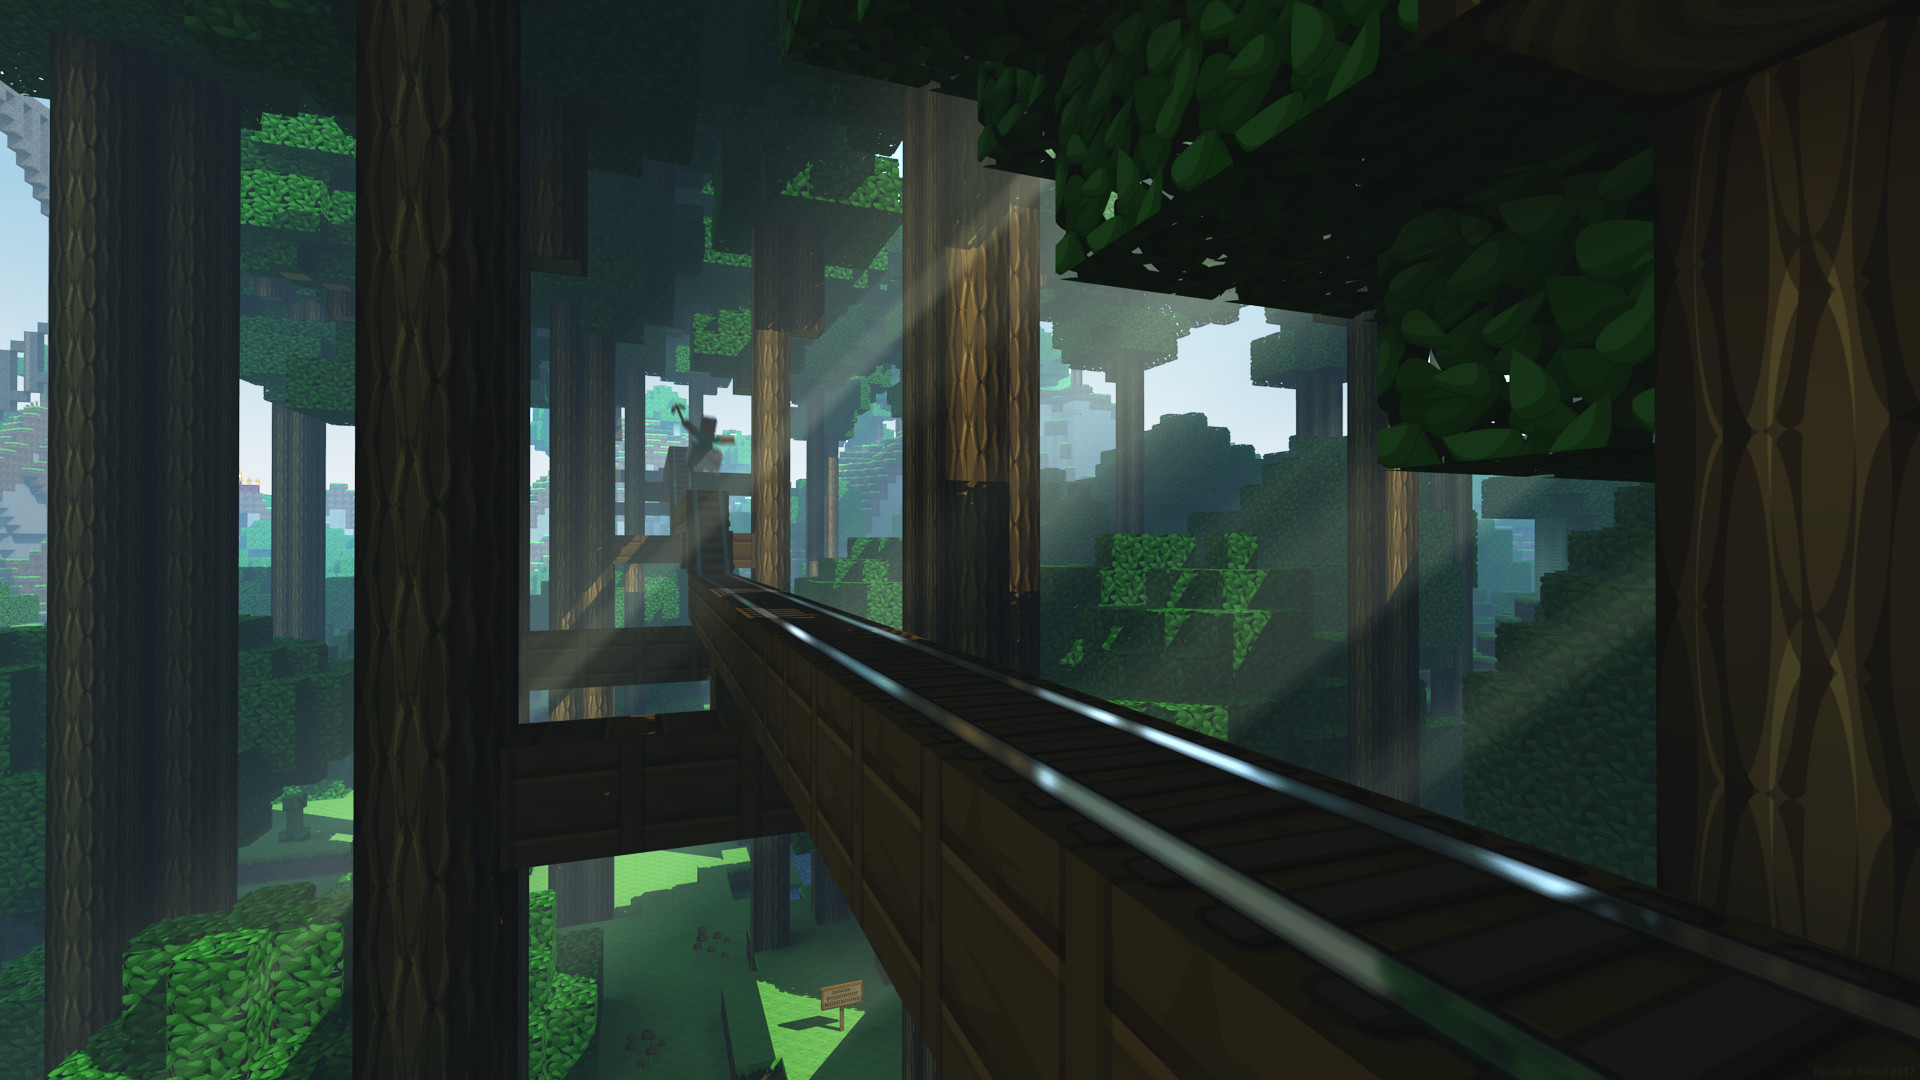 Amazing Wallpaper Minecraft Desktop - 1073601-desktop-wallpaper-minecraft-1920x1080-for-iphone-5s  Best Photo Reference_976567.jpg